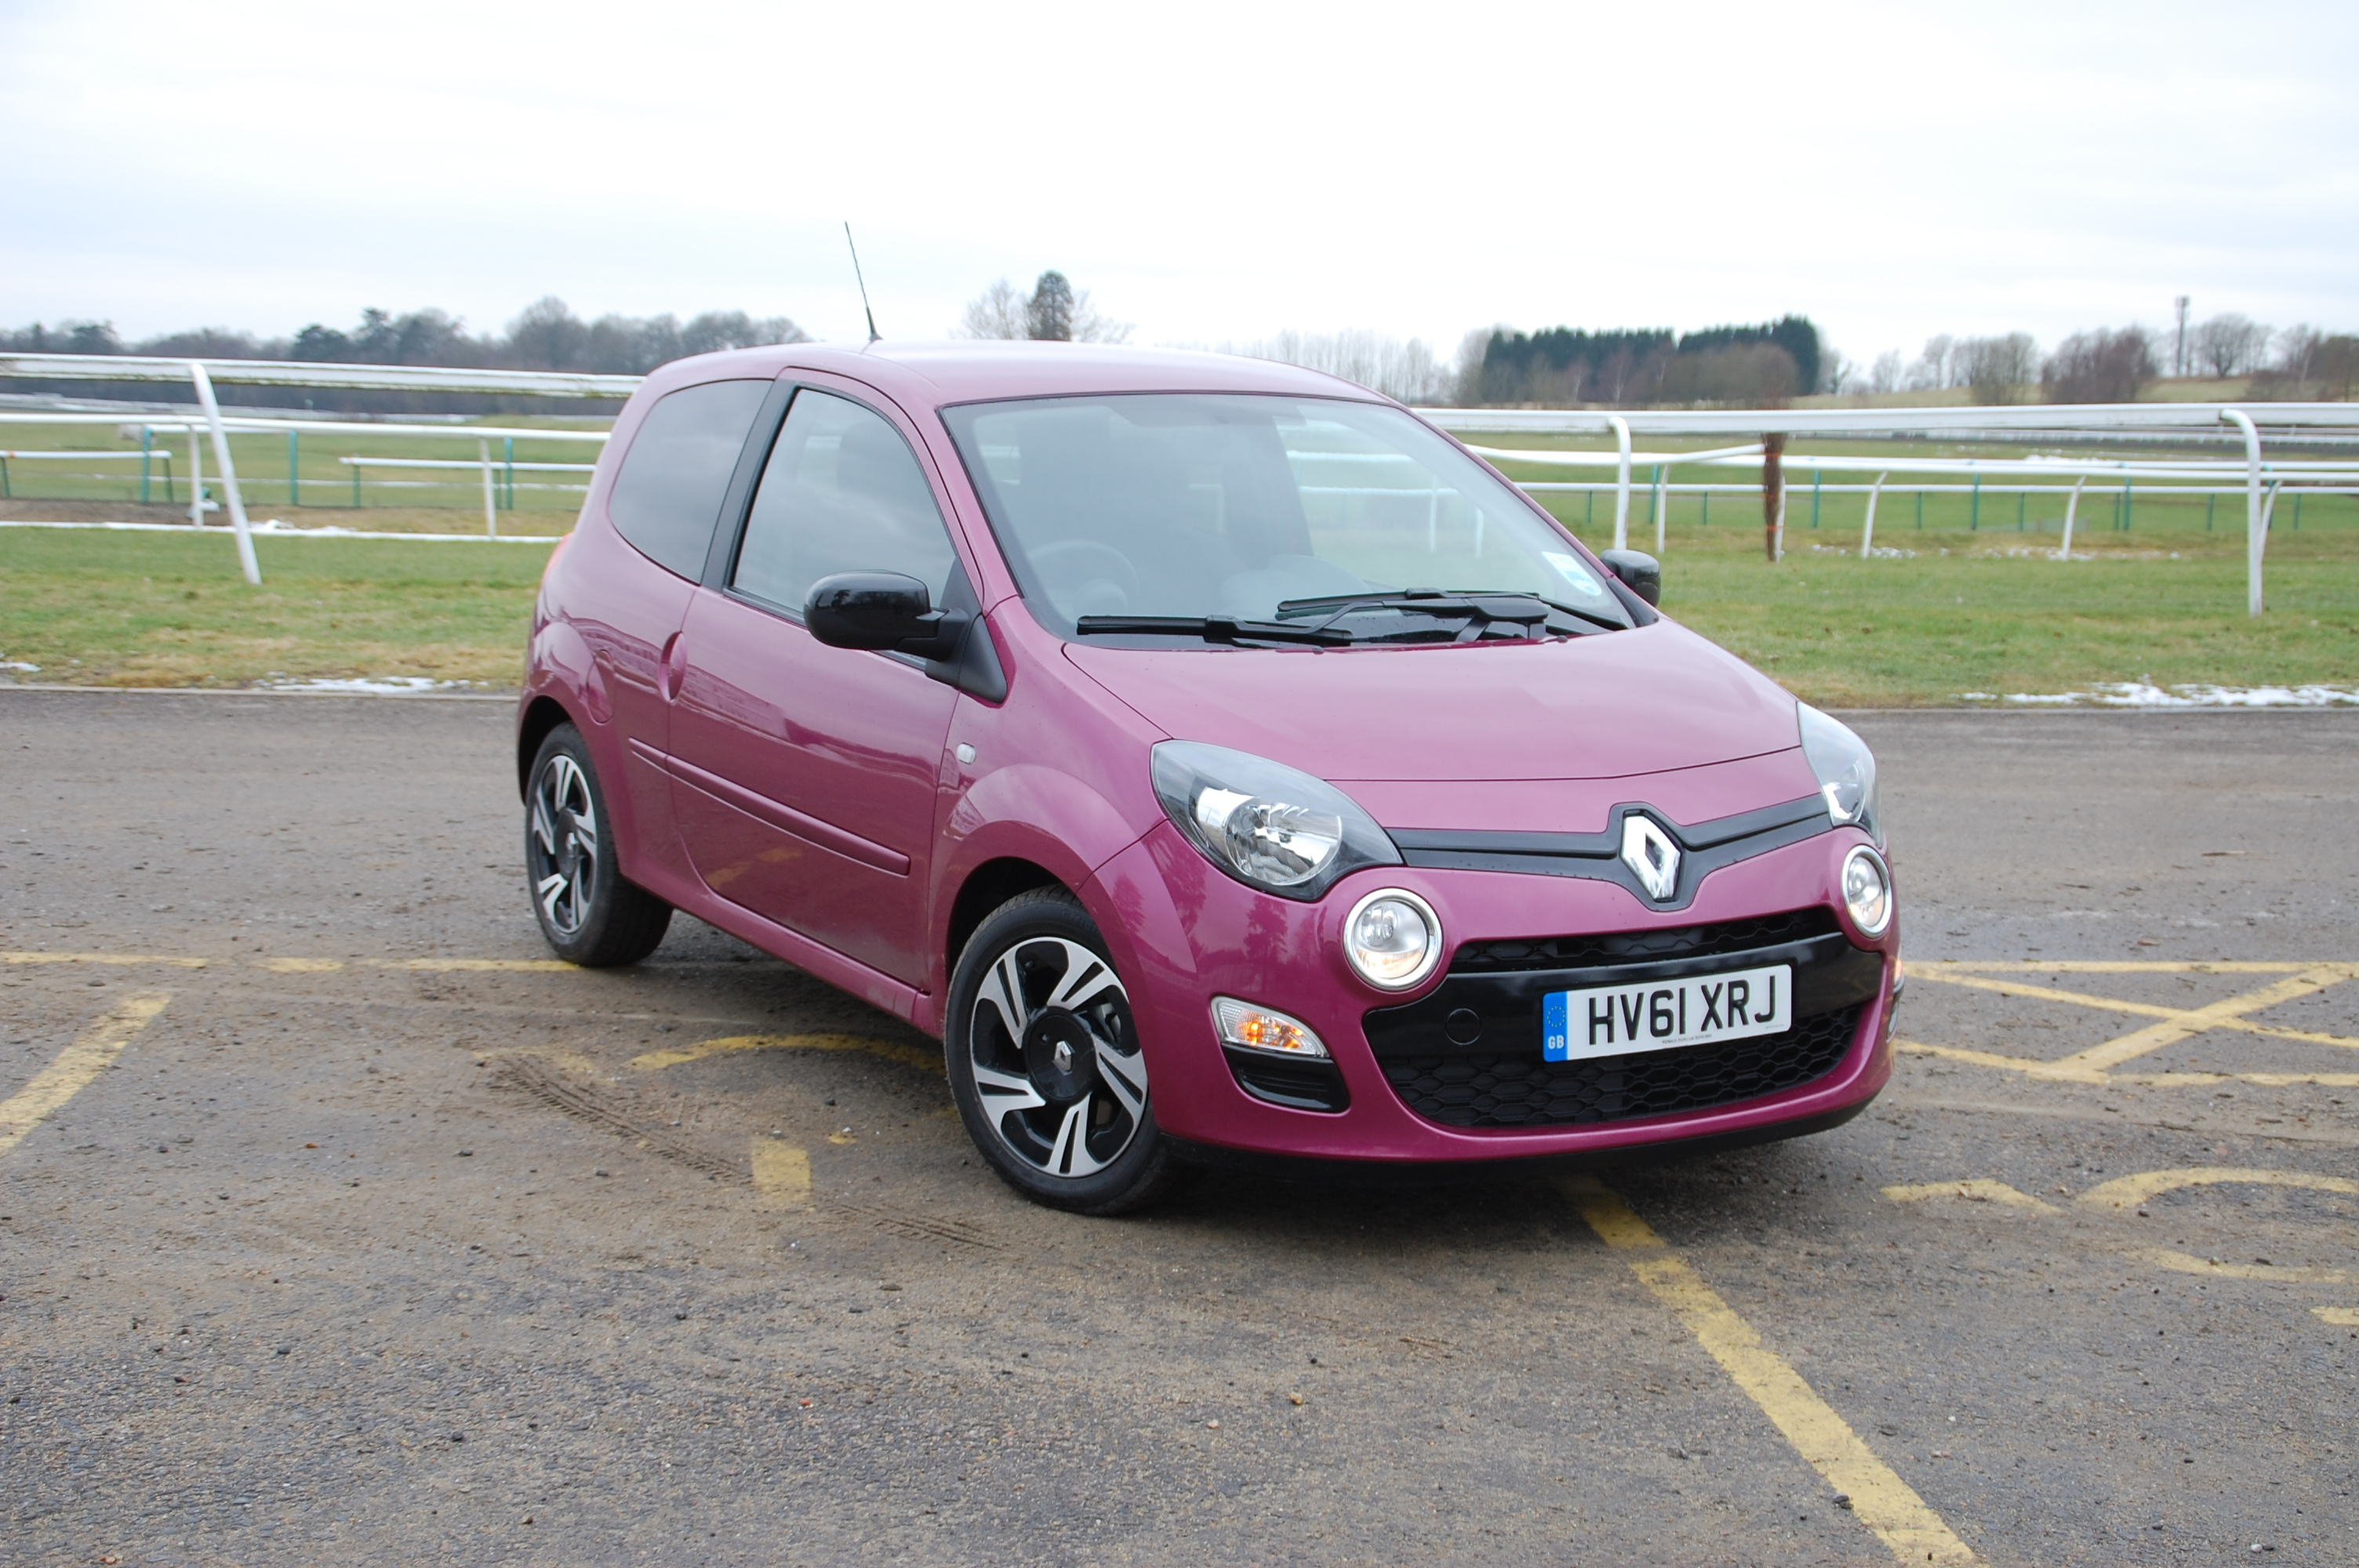 renault twingo dynamique 1 2 16v 75 first drive petroleum vitae. Black Bedroom Furniture Sets. Home Design Ideas